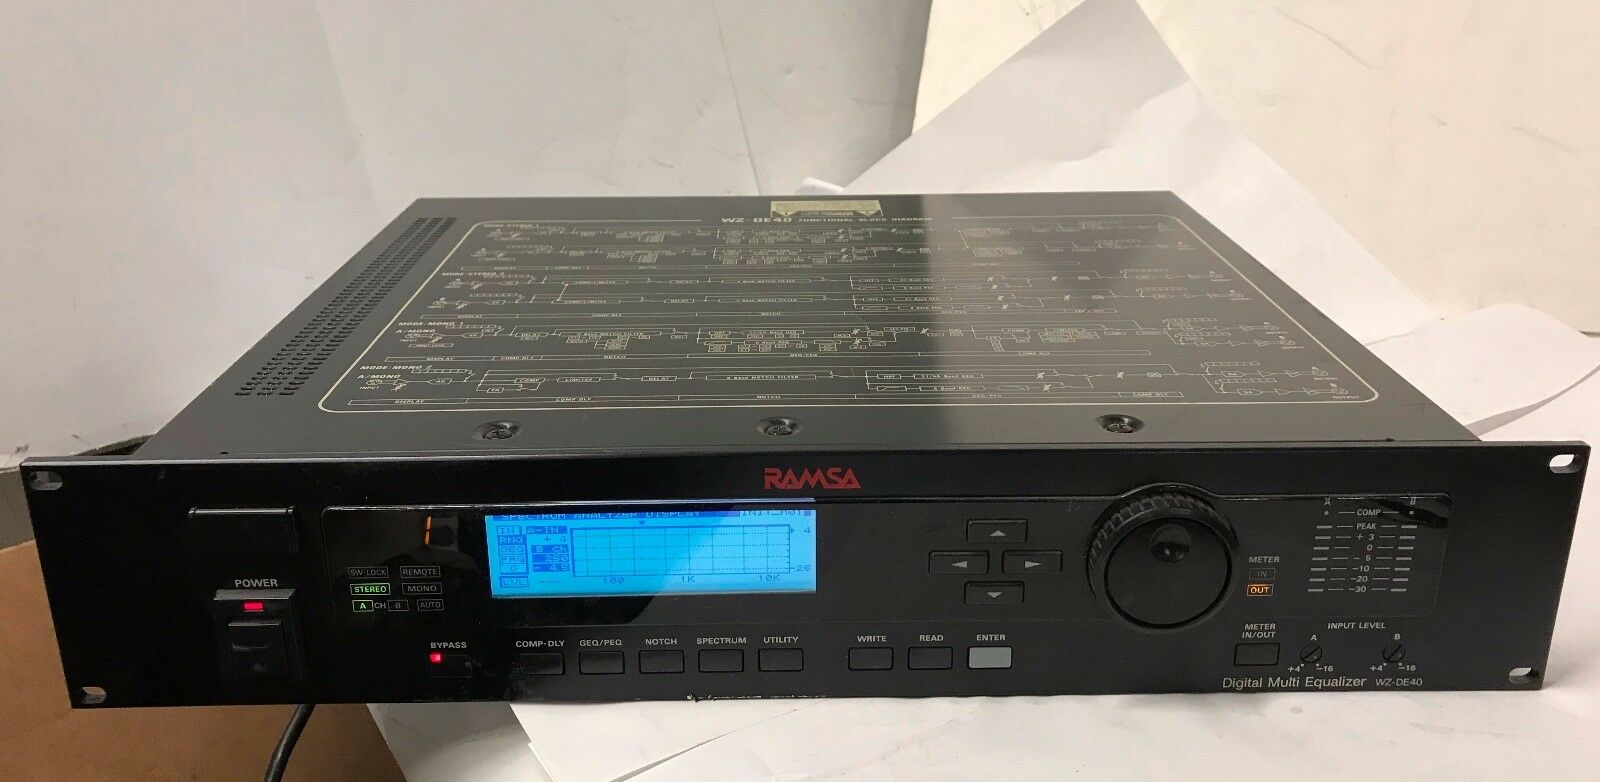 Panasonic RAMSA Digital Equalizer WZ-DE40